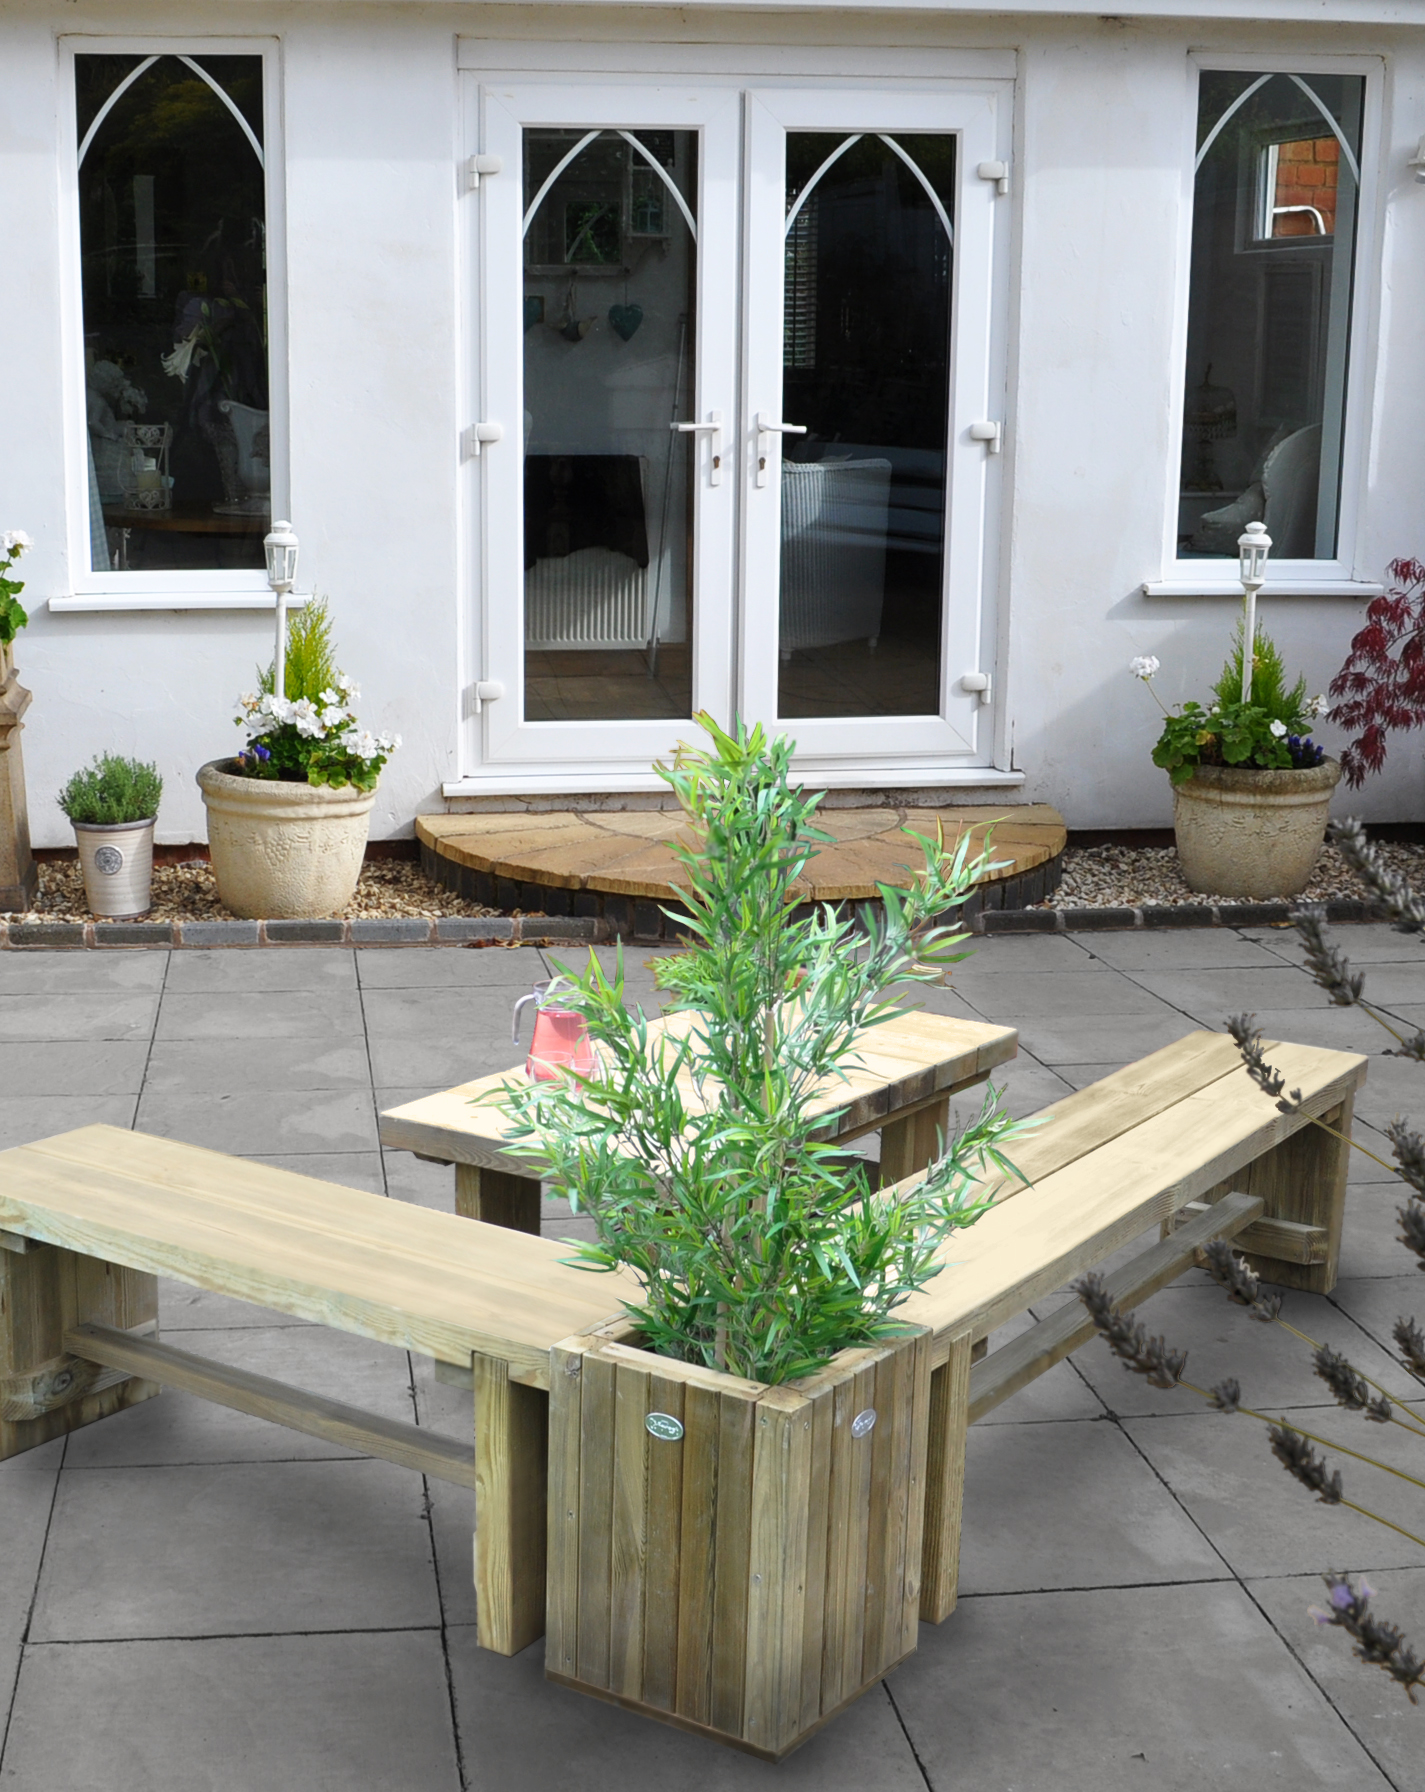 DSBENPL Planter Table Insitu2.jpg